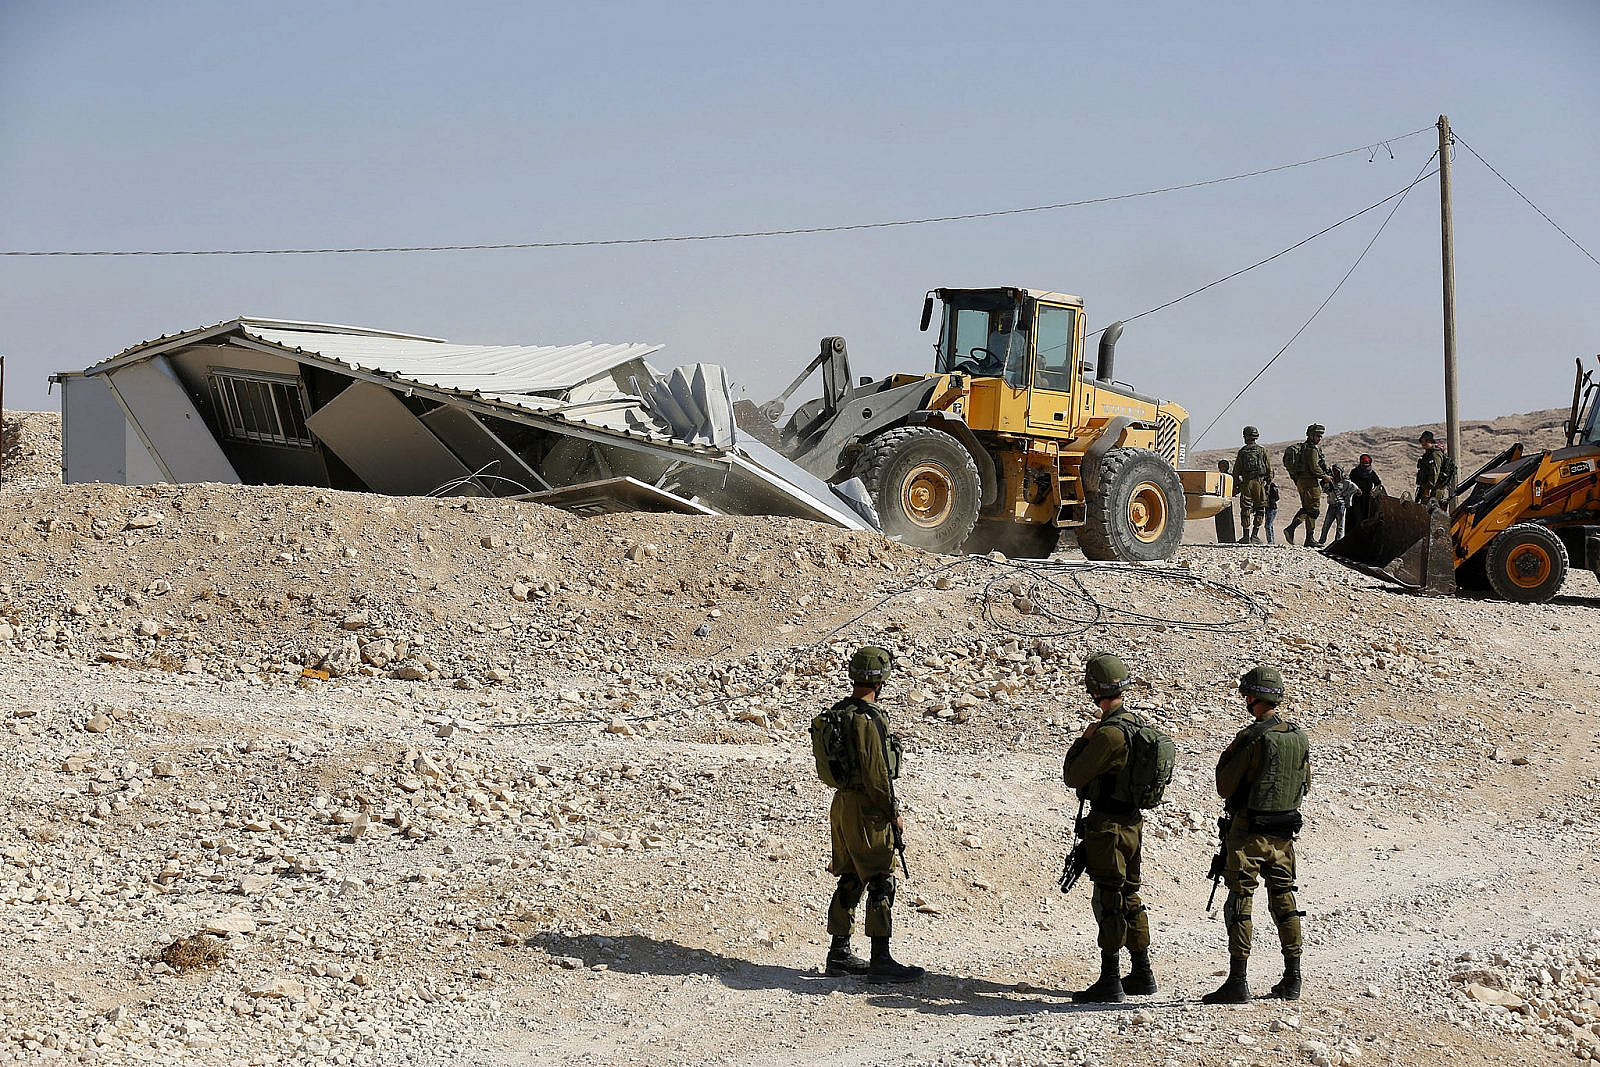 Israeli soldiers stand guard during the demolishing of caravans that were donated by the European Union in the West Bank village of Khashim Al-Daraj, near Yatta, August 14, 2017. (Wisam Hashlamoun/Flash90)